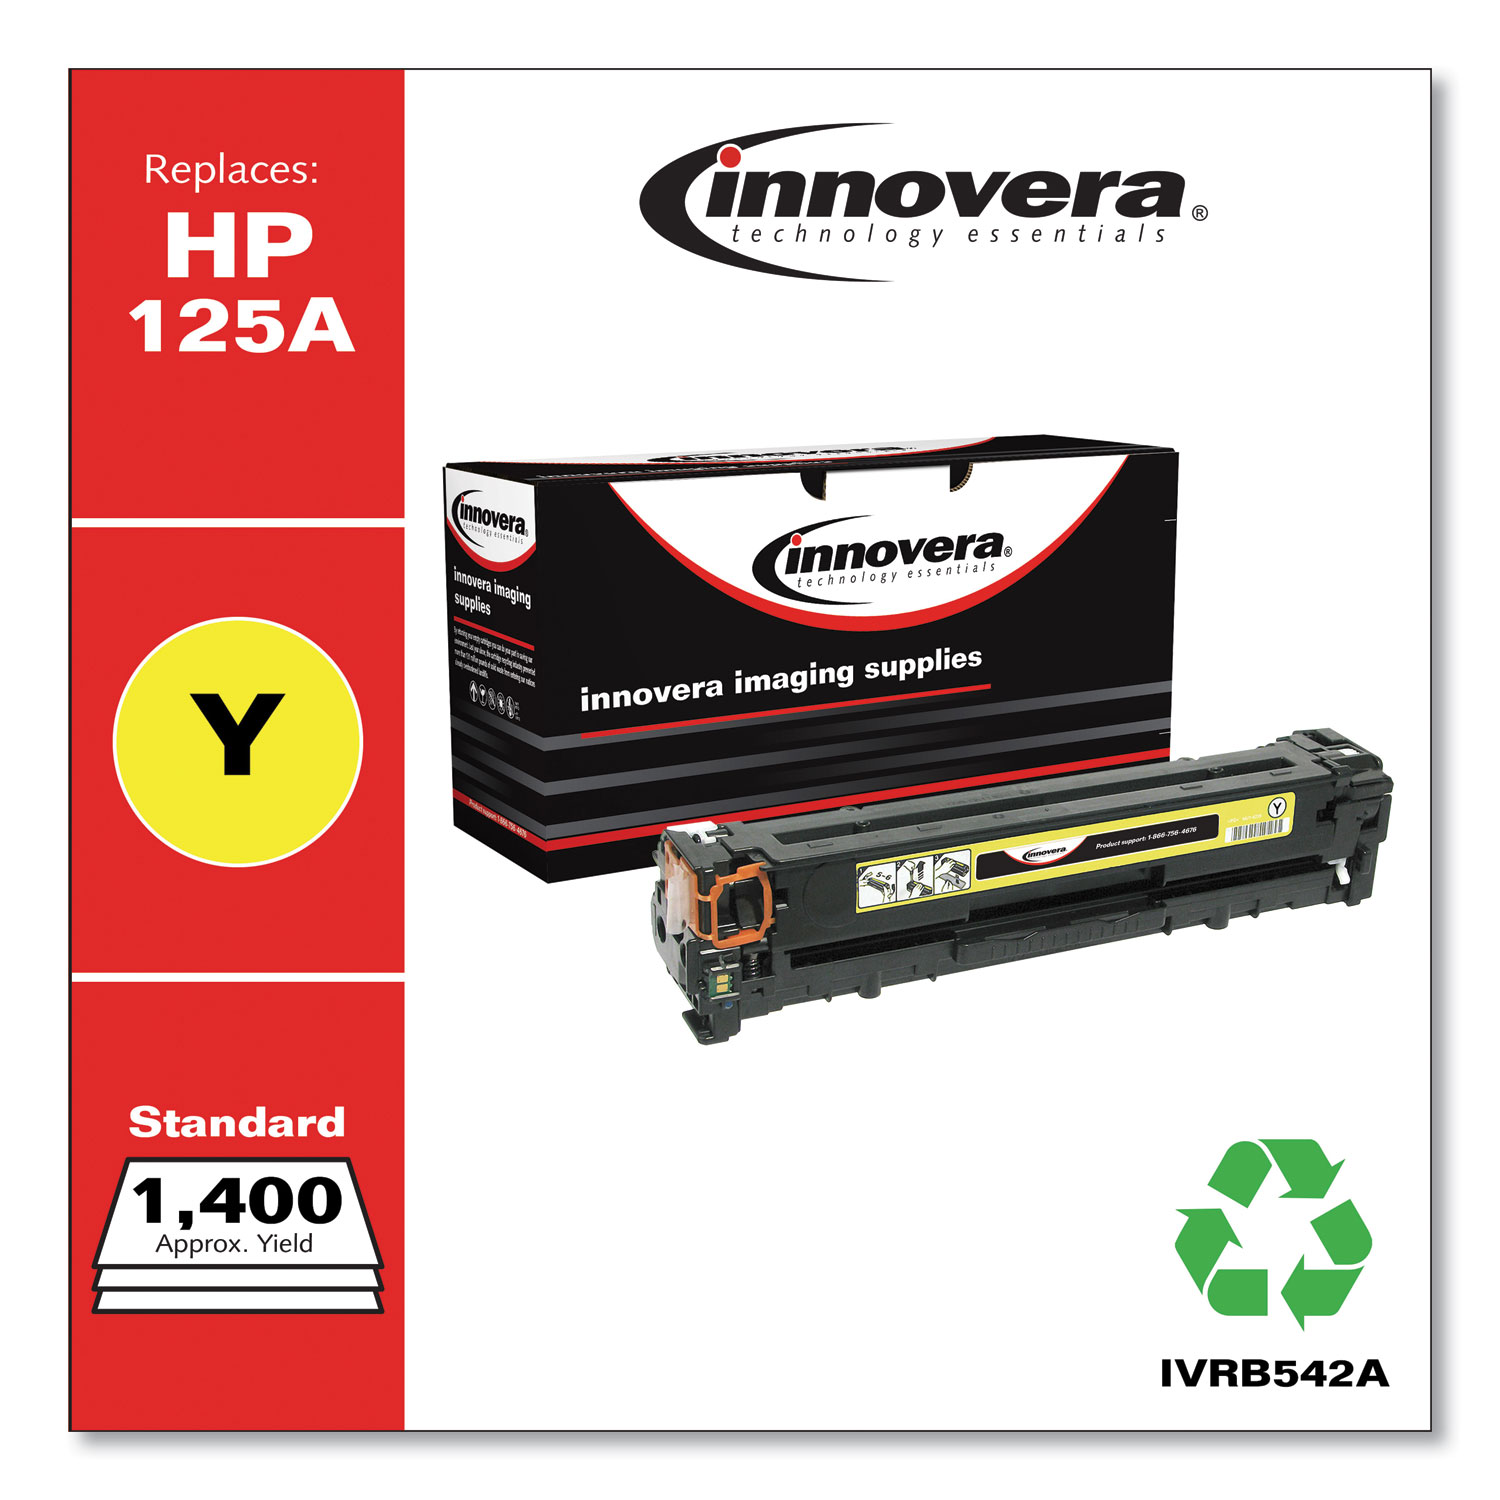 Remanufactured Yellow Toner, Replacement for HP 125A (CB542A), 1,400 Page-Yield IVRB542A